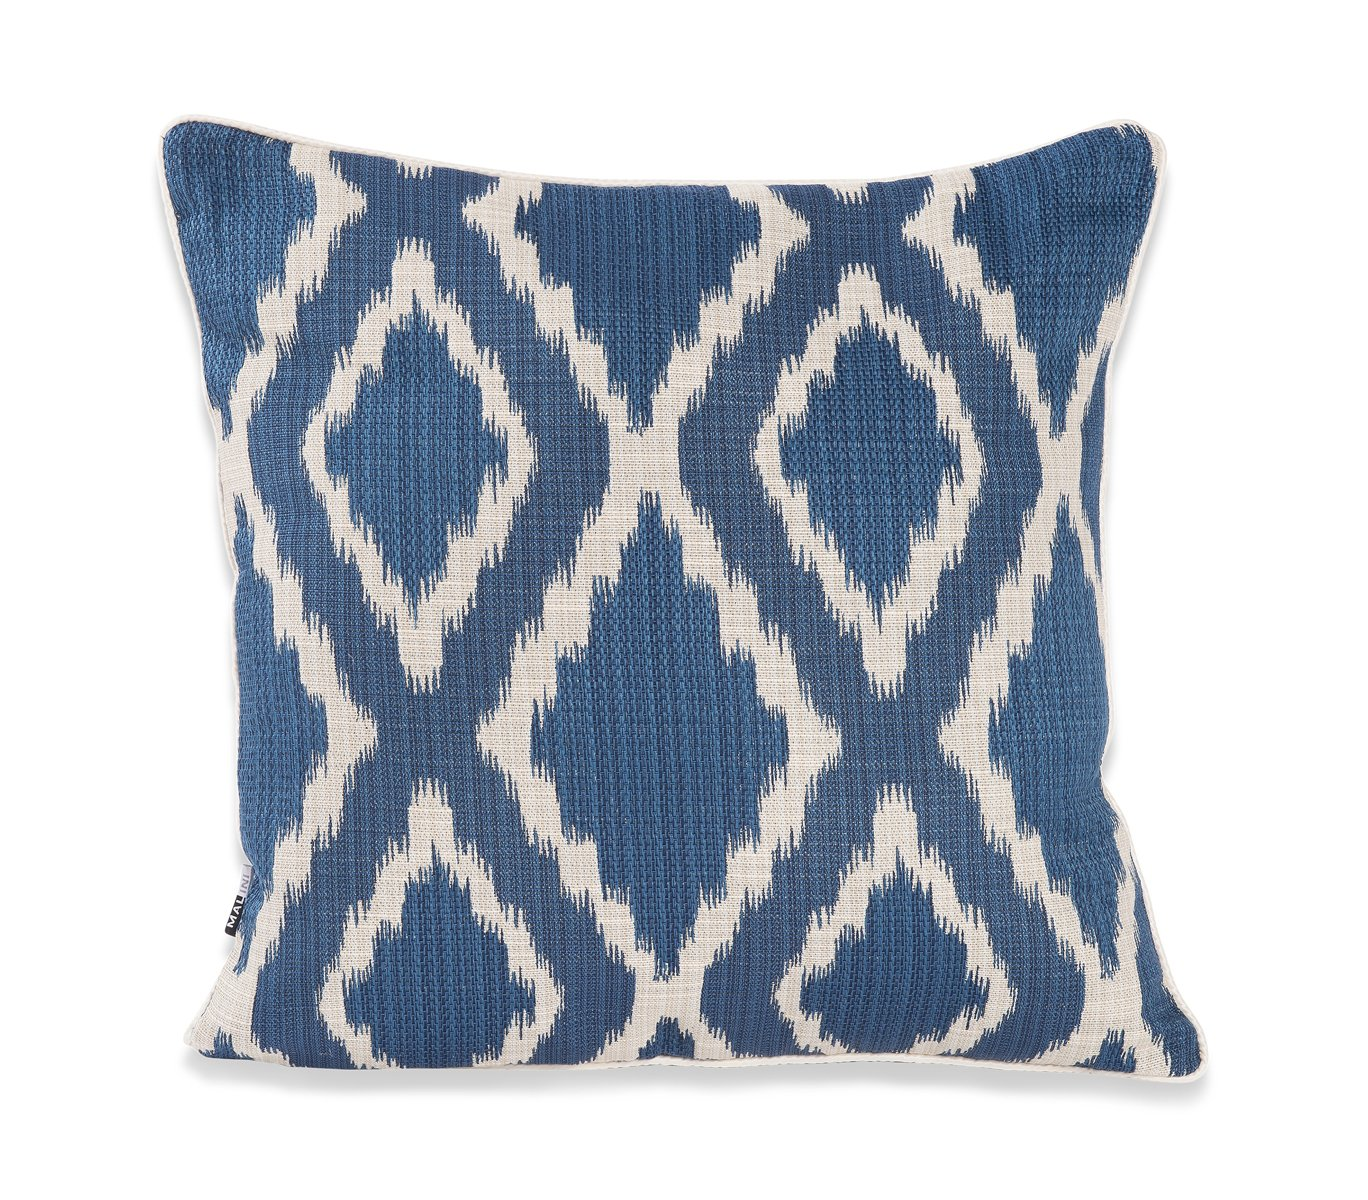 Malini Blue Cushion - Libra: Amazon.co.uk: Kitchen & Home